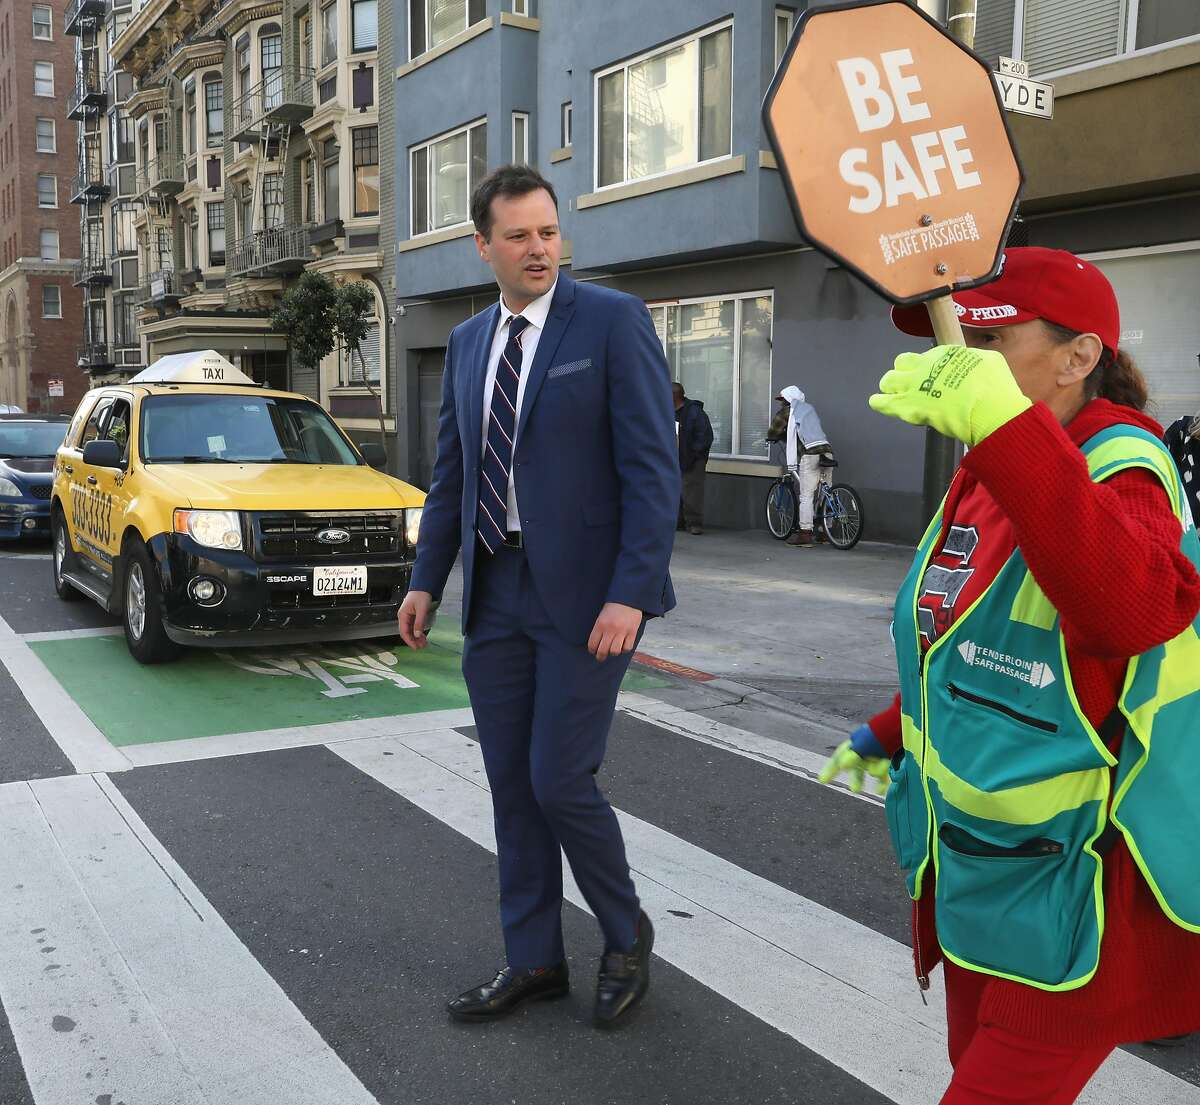 Supervisor Matt Haney (left) talks to traffic guard Sienna Noel (right) about sidewalk clean up in the tenderloin as she crosses him on Hyde St. on Wednesday, April 17, 2019, in San Francisco, Calif.